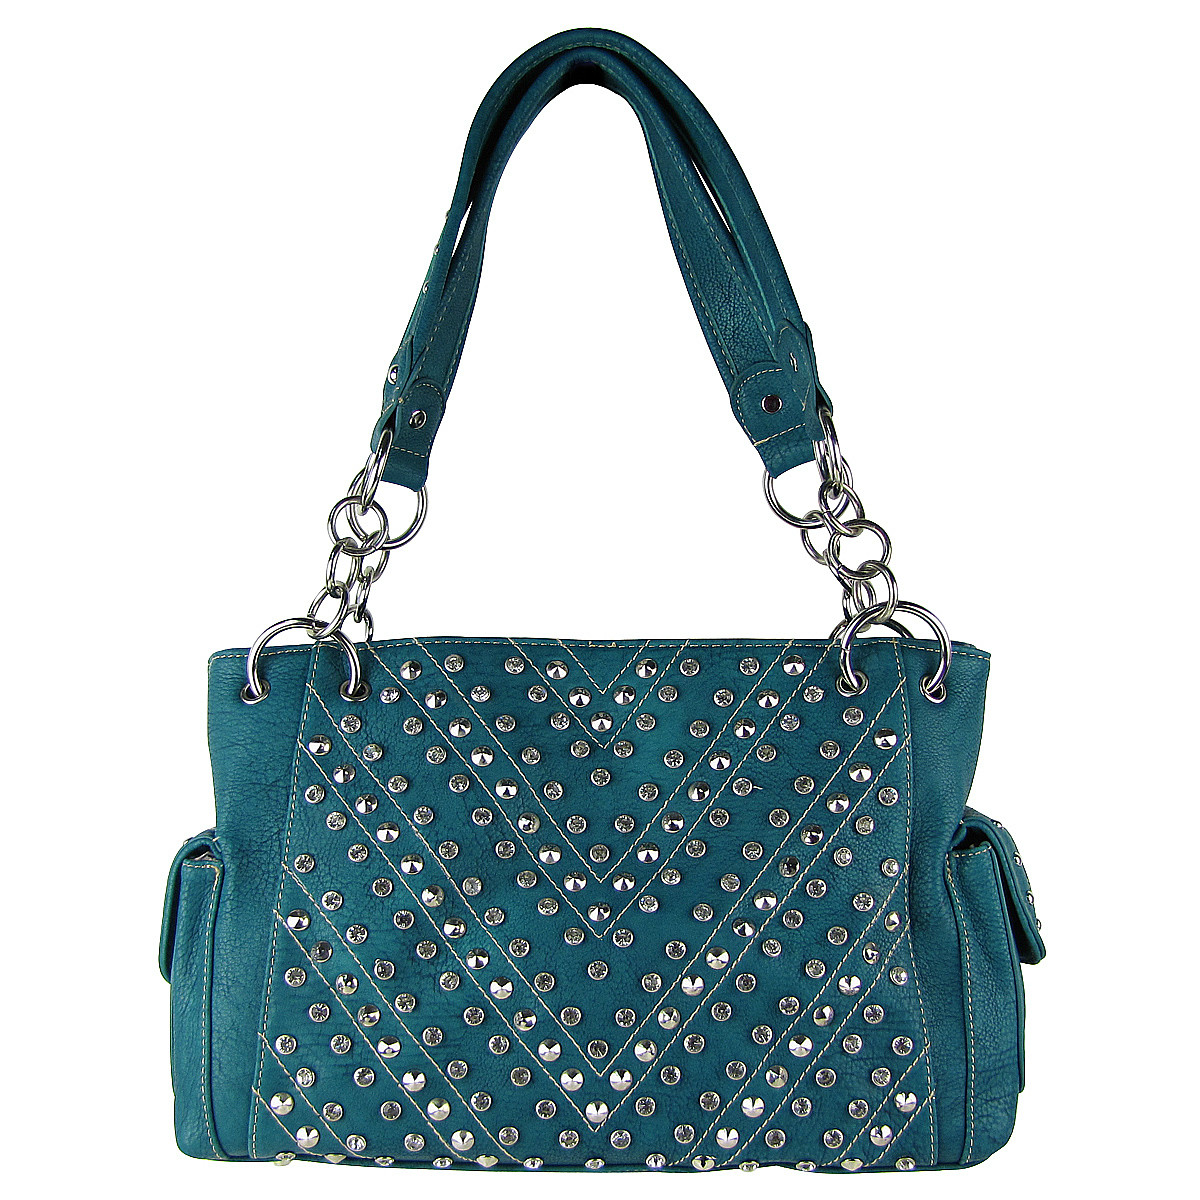 TURQUOISE RHINESTONE STUDDED LEATHERETTE LOOK SHOULDER HANDBAG HB1-12480TRQ